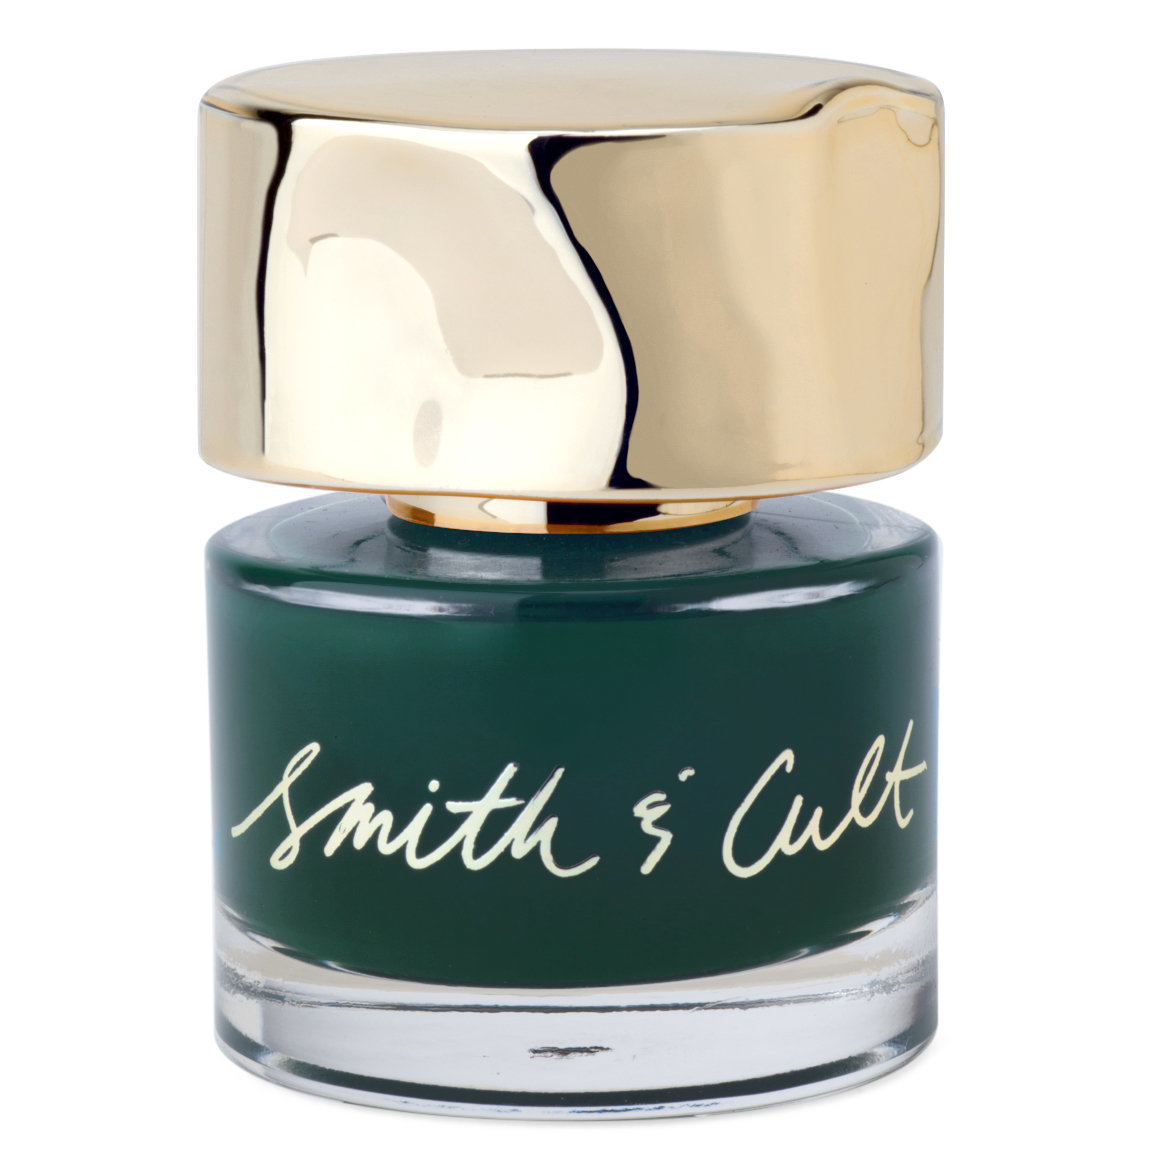 Smith & Cult Nailed Lacquer Darjeeling Darling